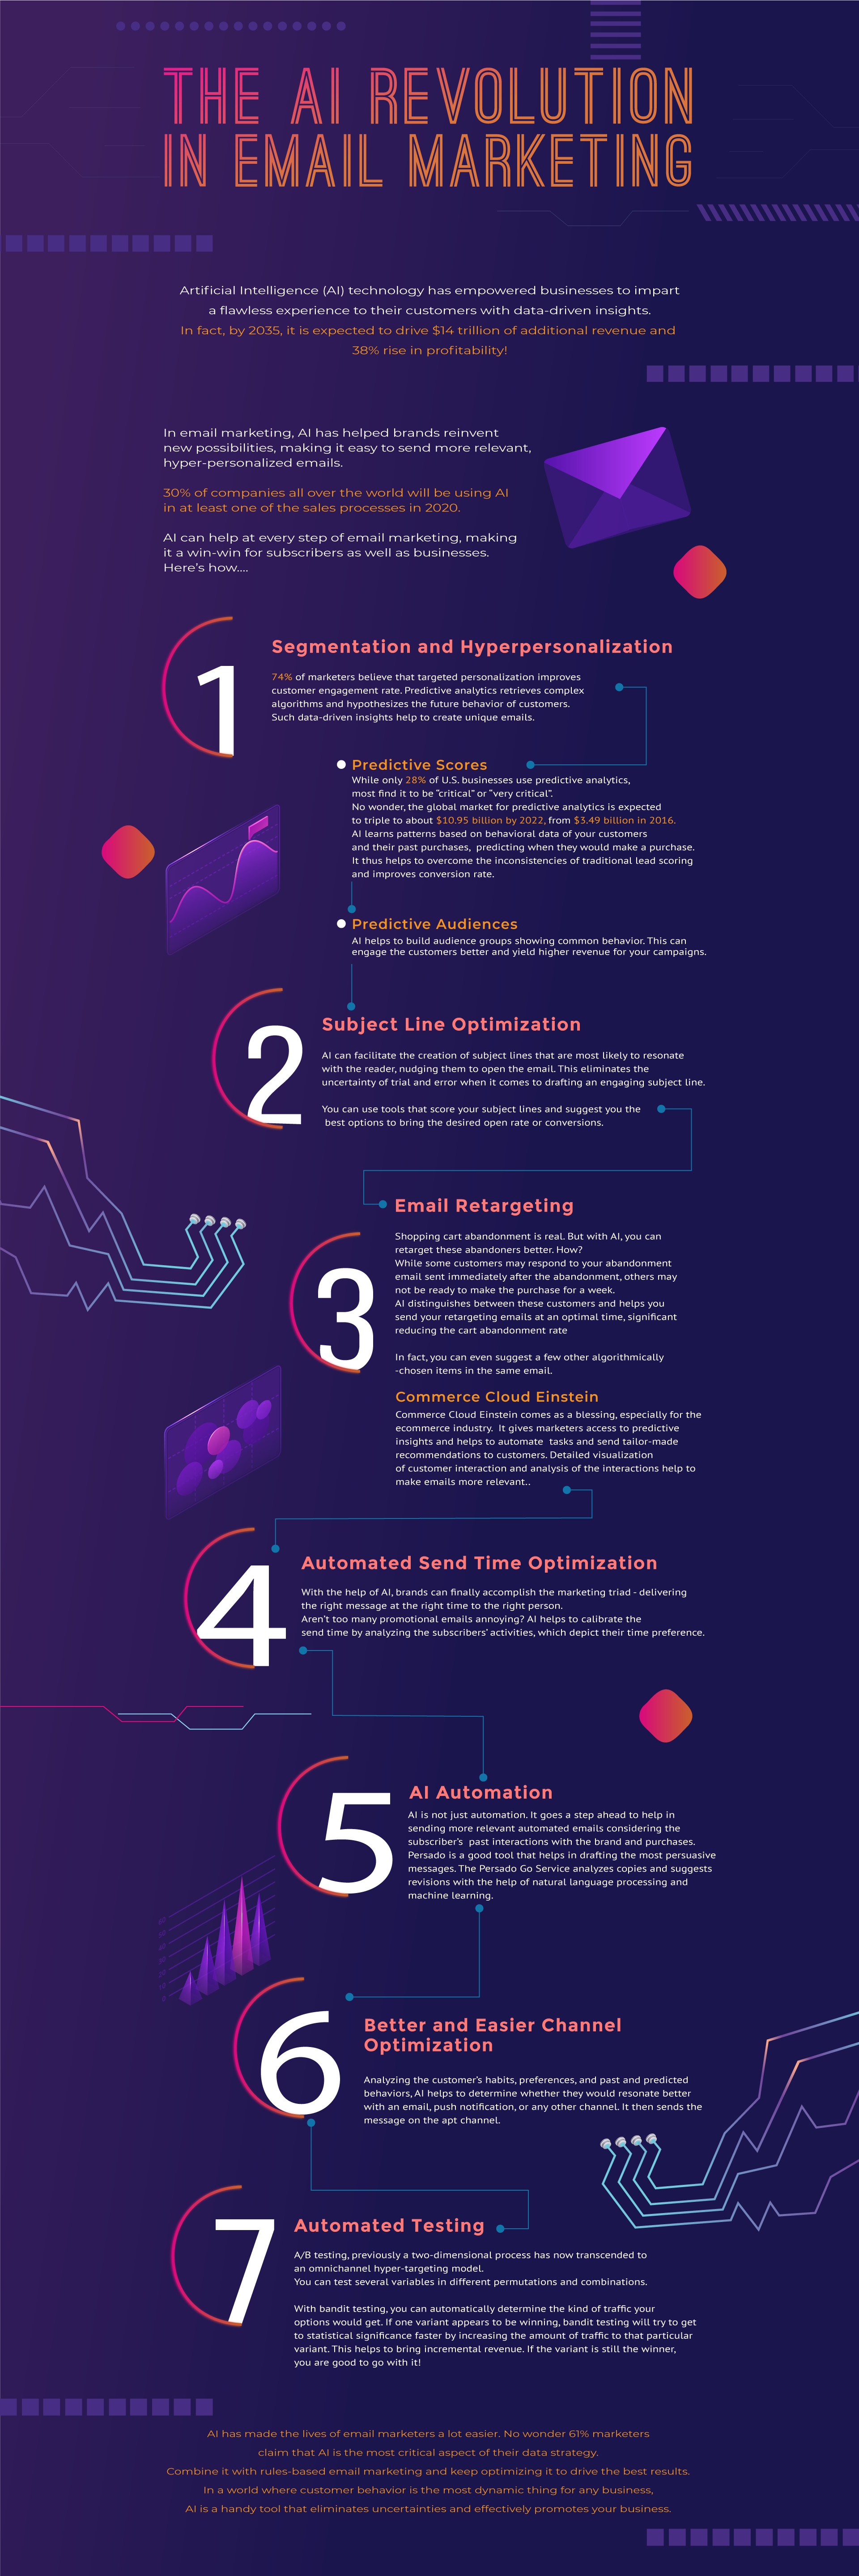 The AI Revolution in email marketing